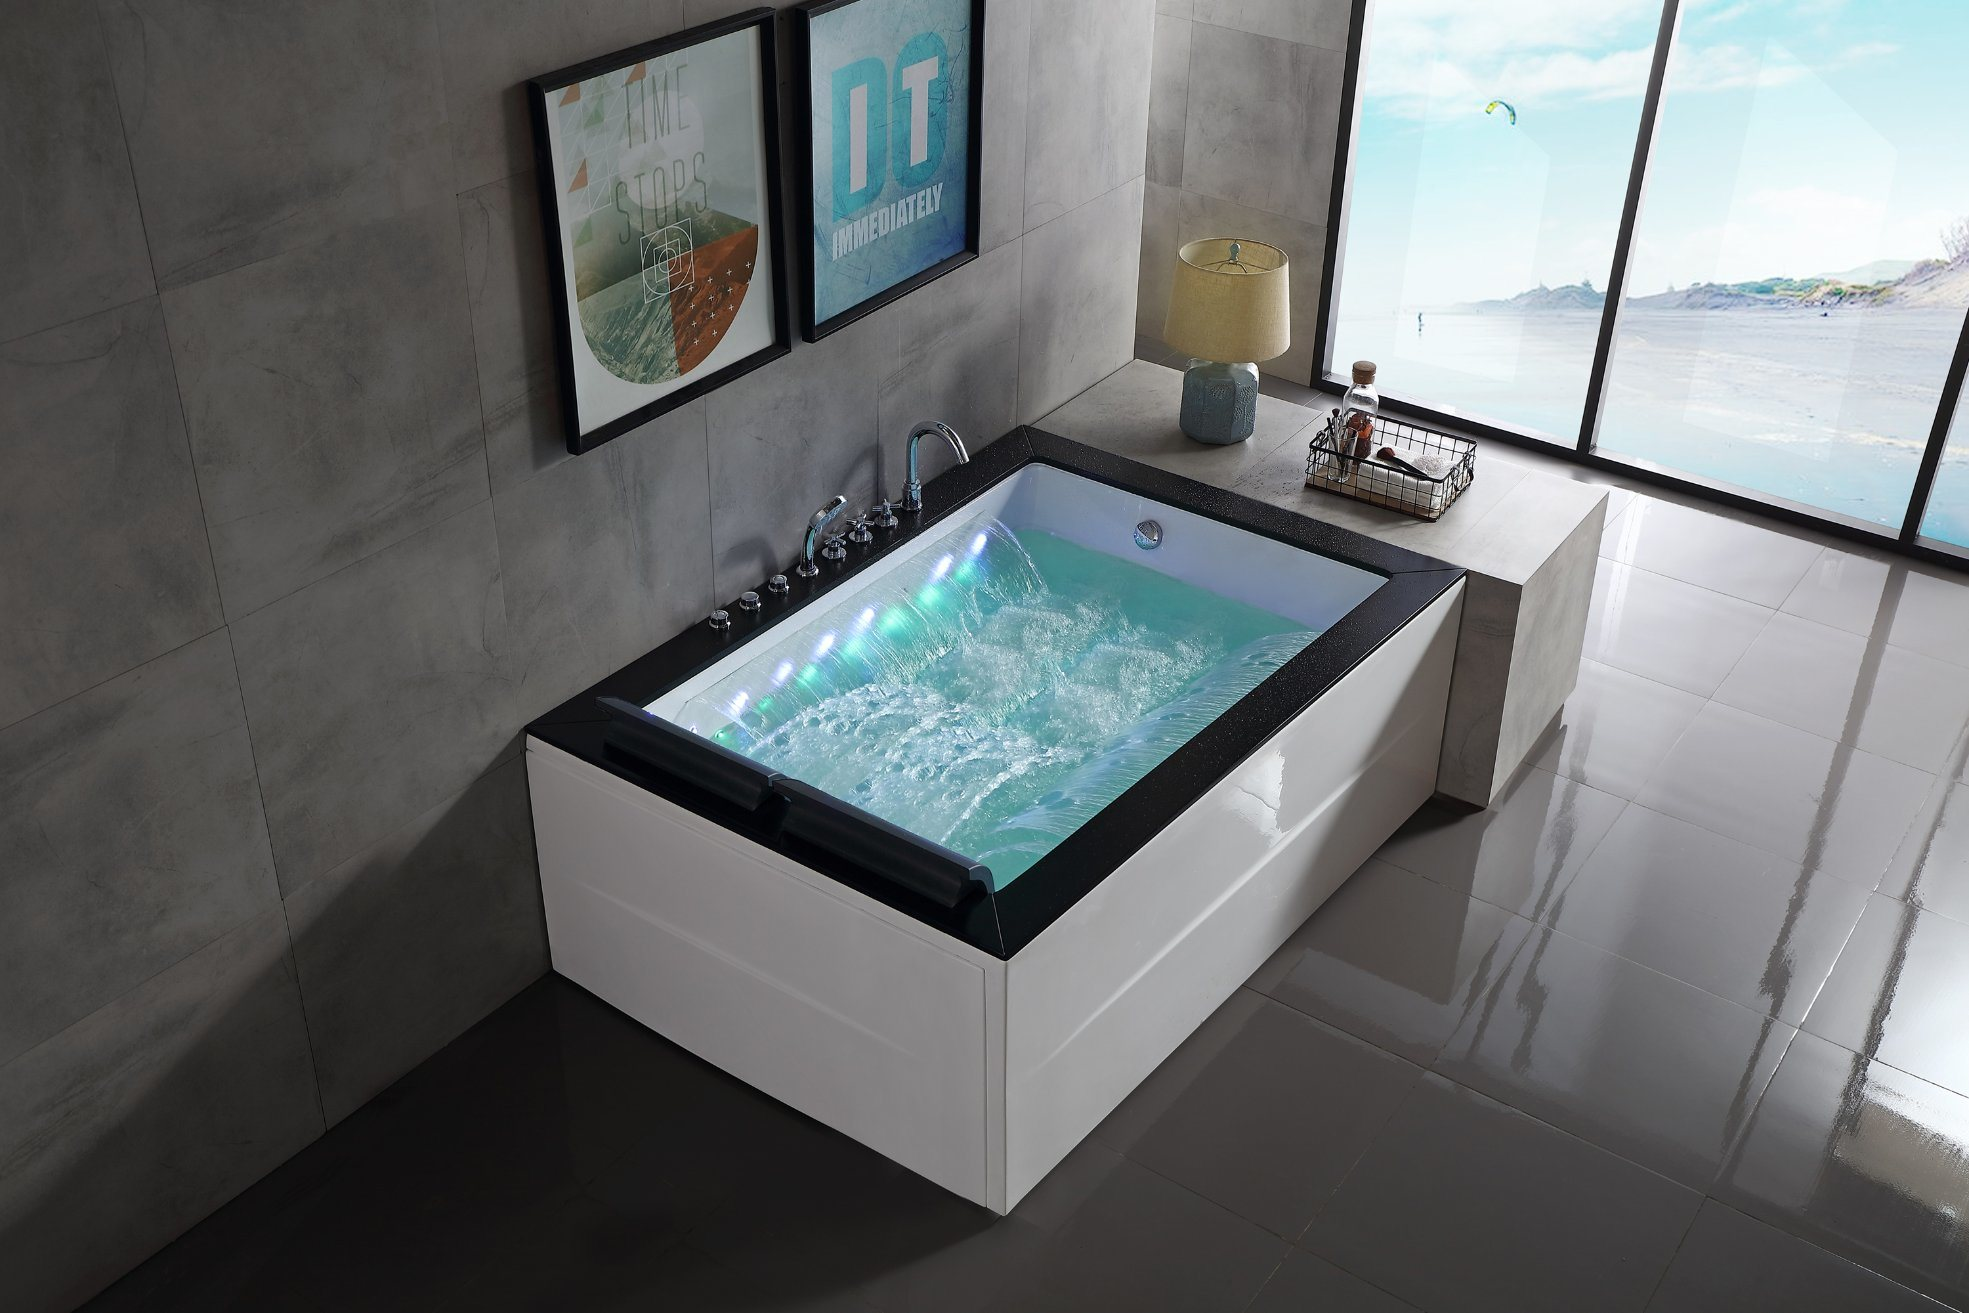 China Wooden Bathtub Wooden Bathtub Manufacturers Suppliers Price Made In Chinacom